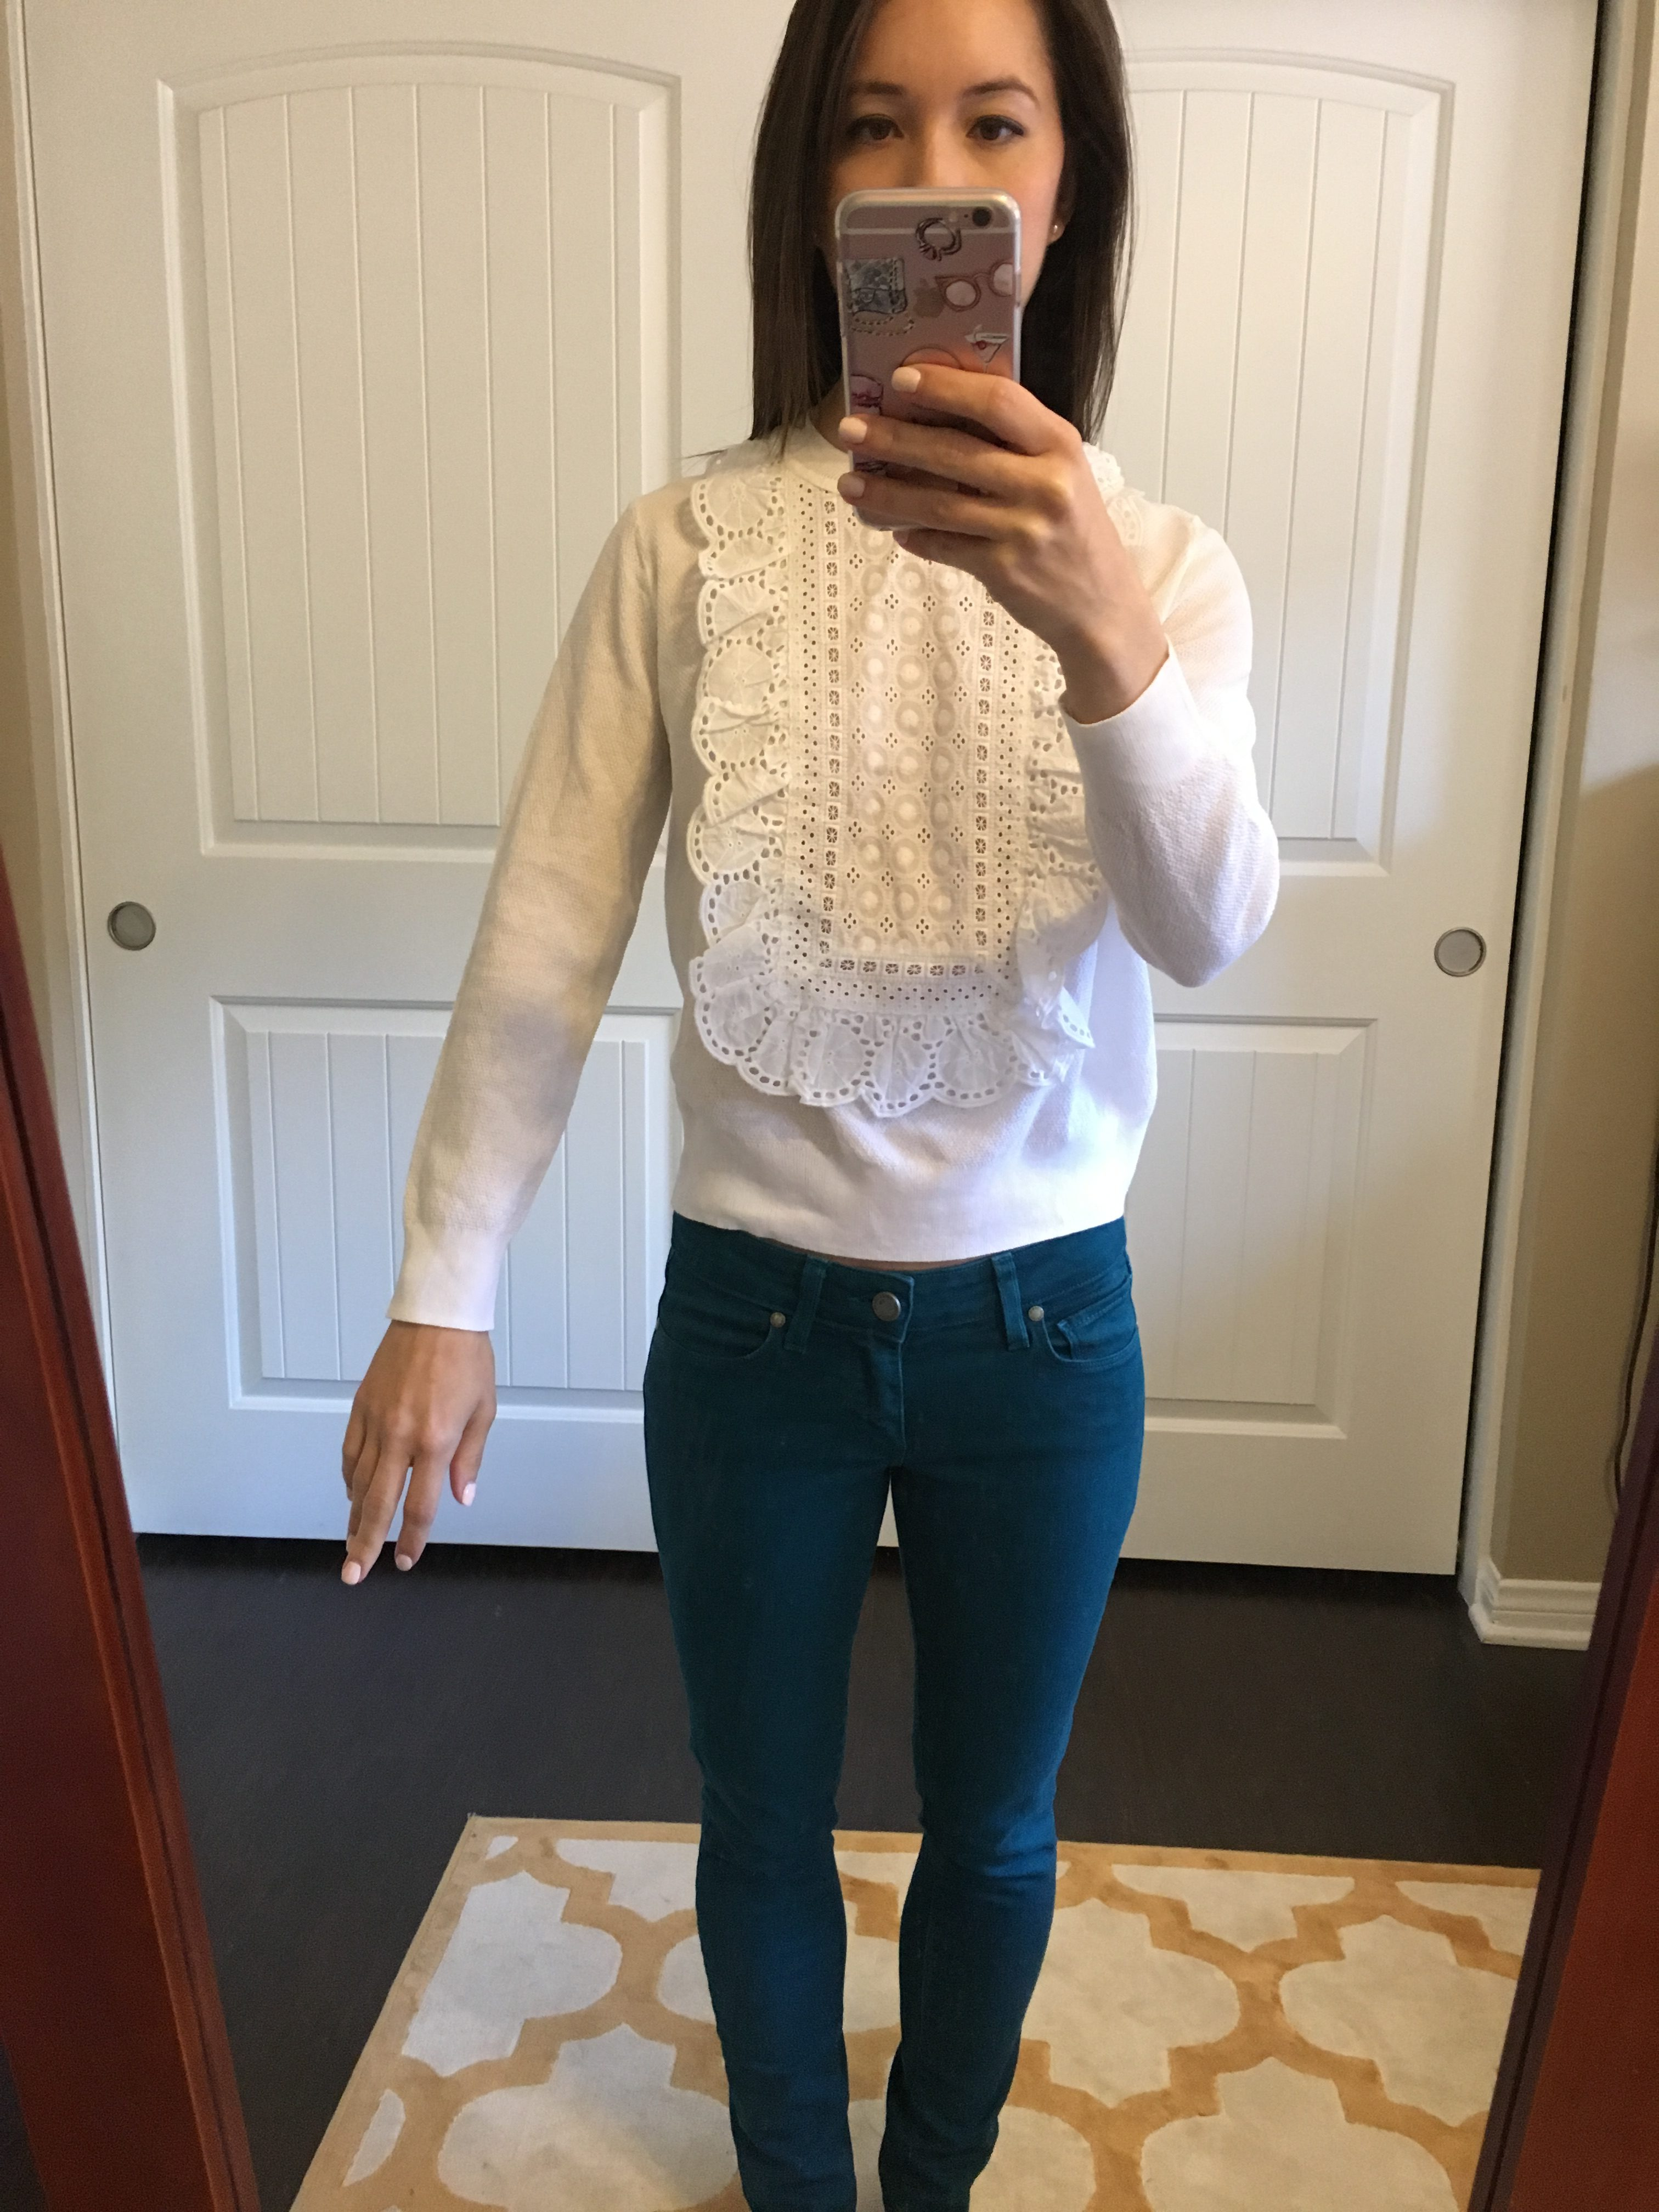 Petite-Style-Script-J-Crew-Eyelet-Sweater-White-Summerweight-Cotton-Review-petite-fashion-style-blog